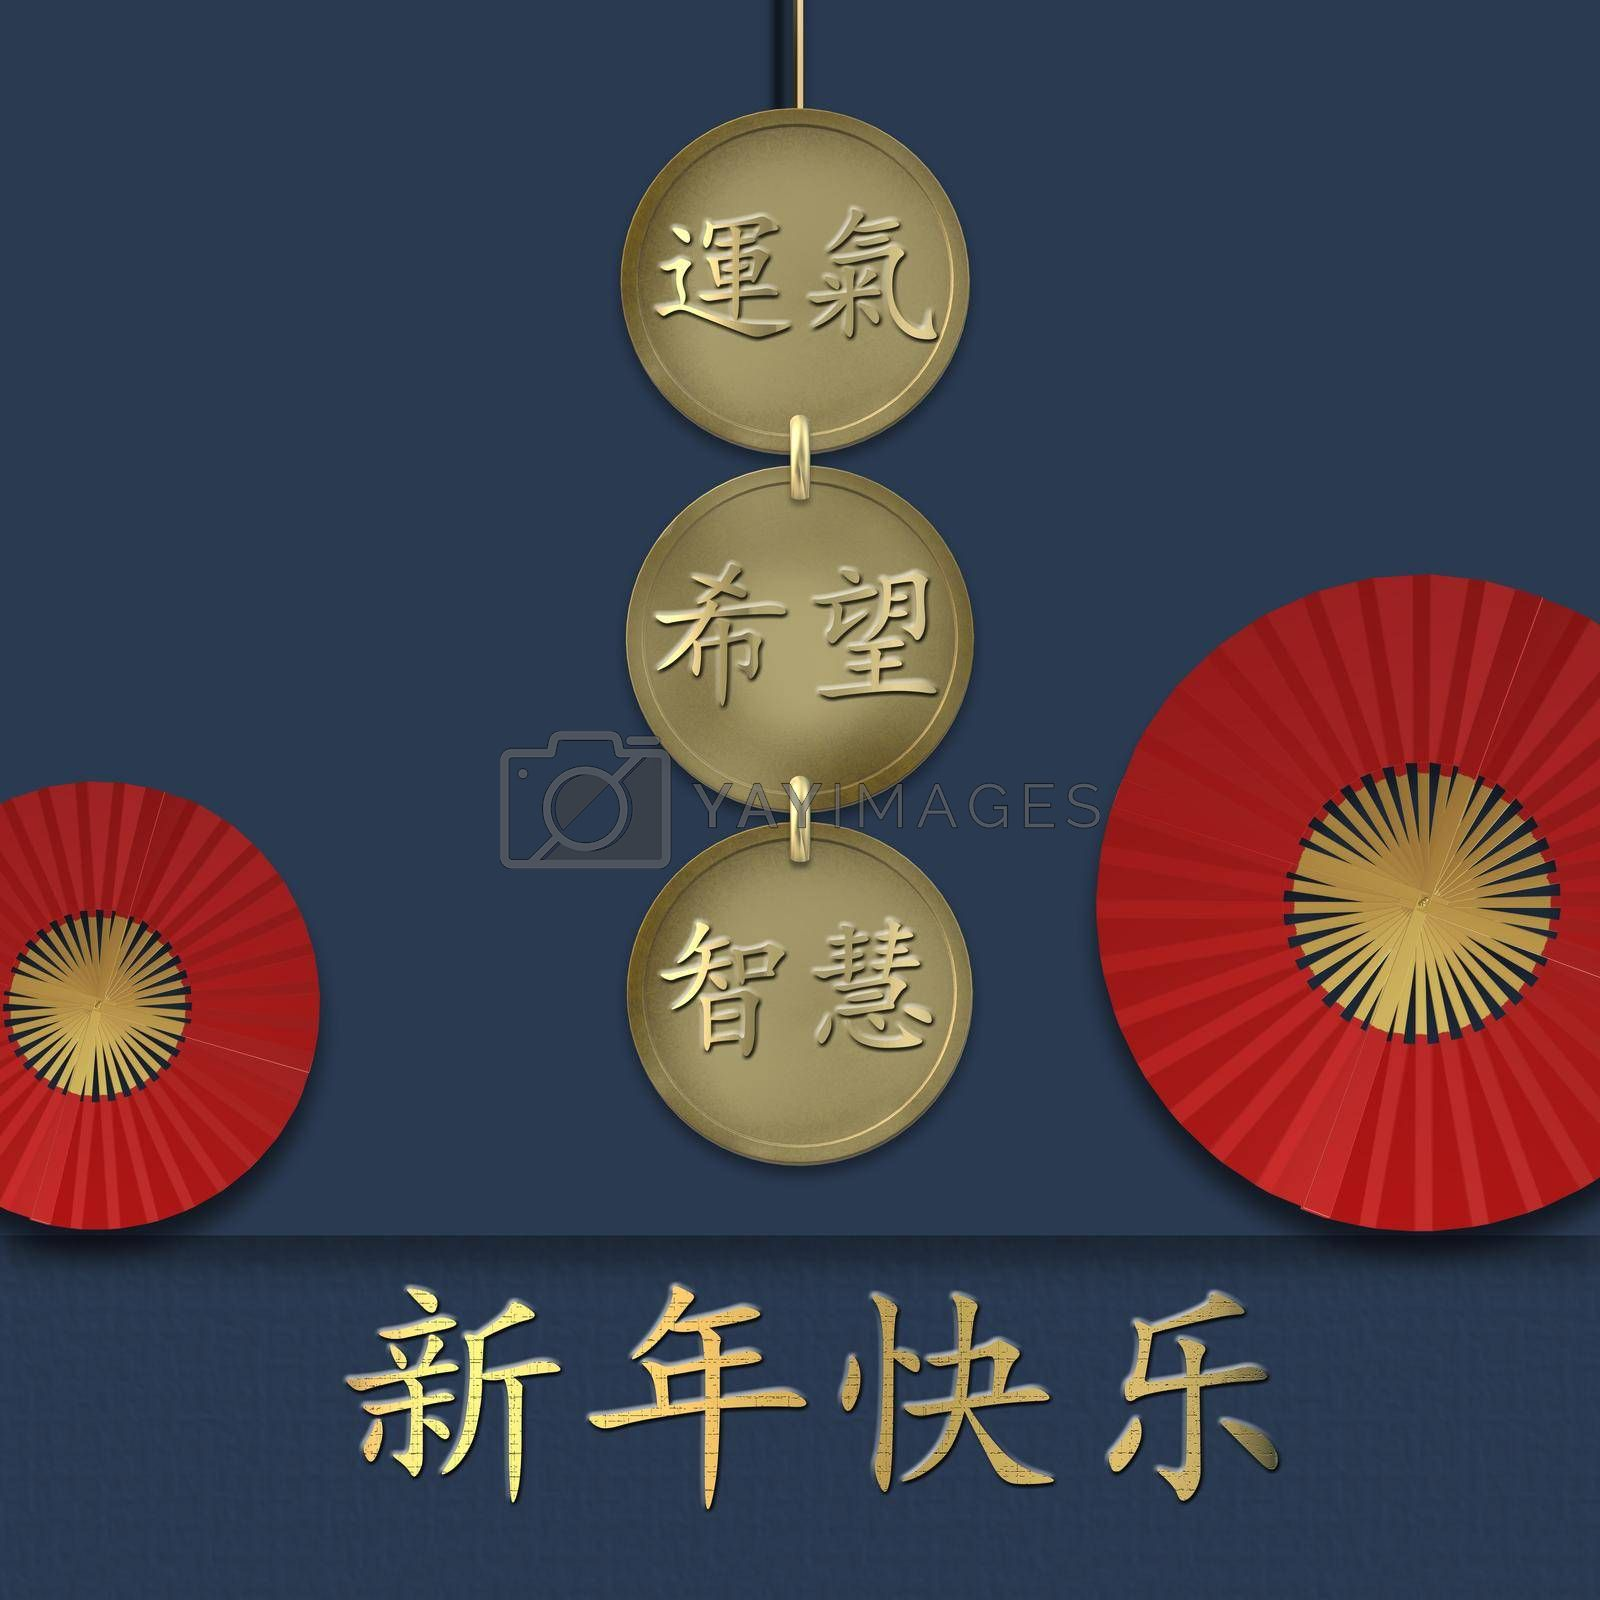 Chinese New Year design with lucky coins over blue. Red Chinese lucky coins with text, Chinese translation Happy New Year, Luck, Hope, Wisdom. Design for greetings, Asian card. 3D illustration